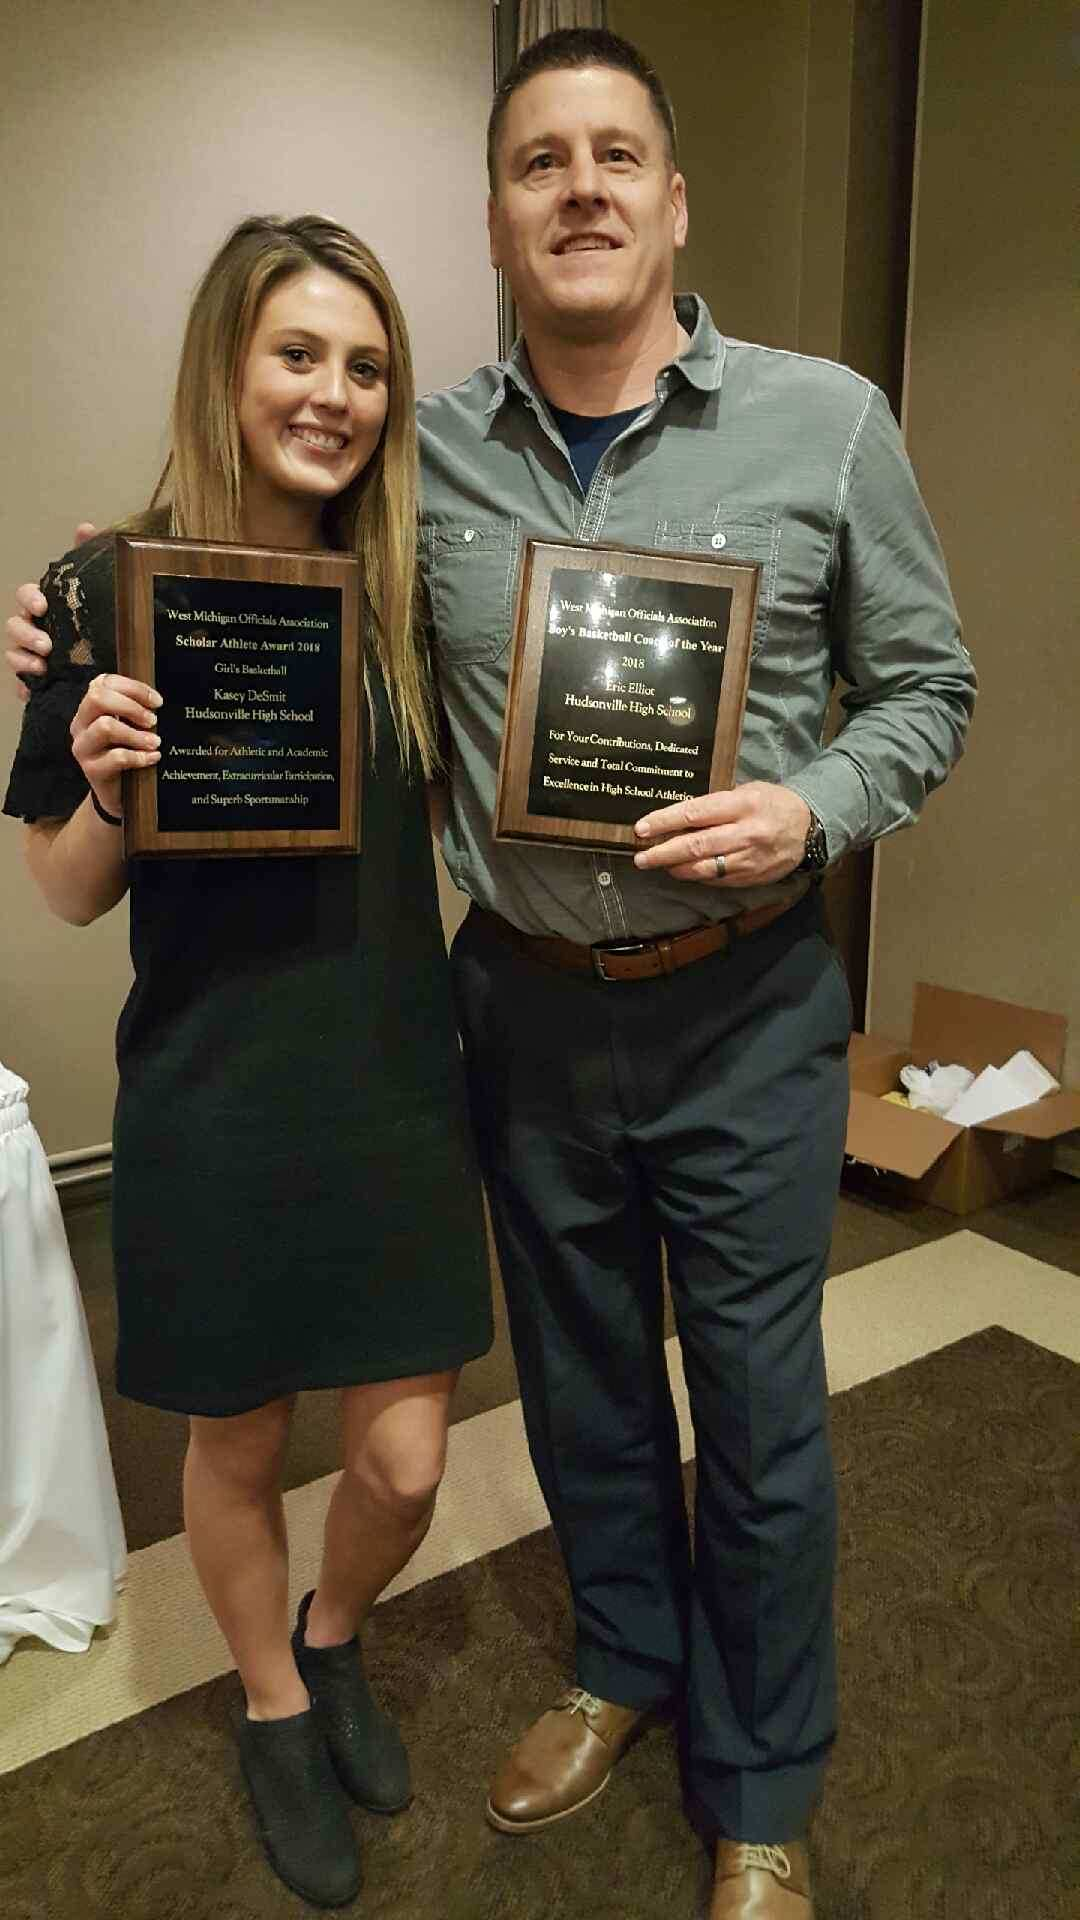 Kasey DeSmit and Eric Elliot Honored by the West Michigan Officials Association